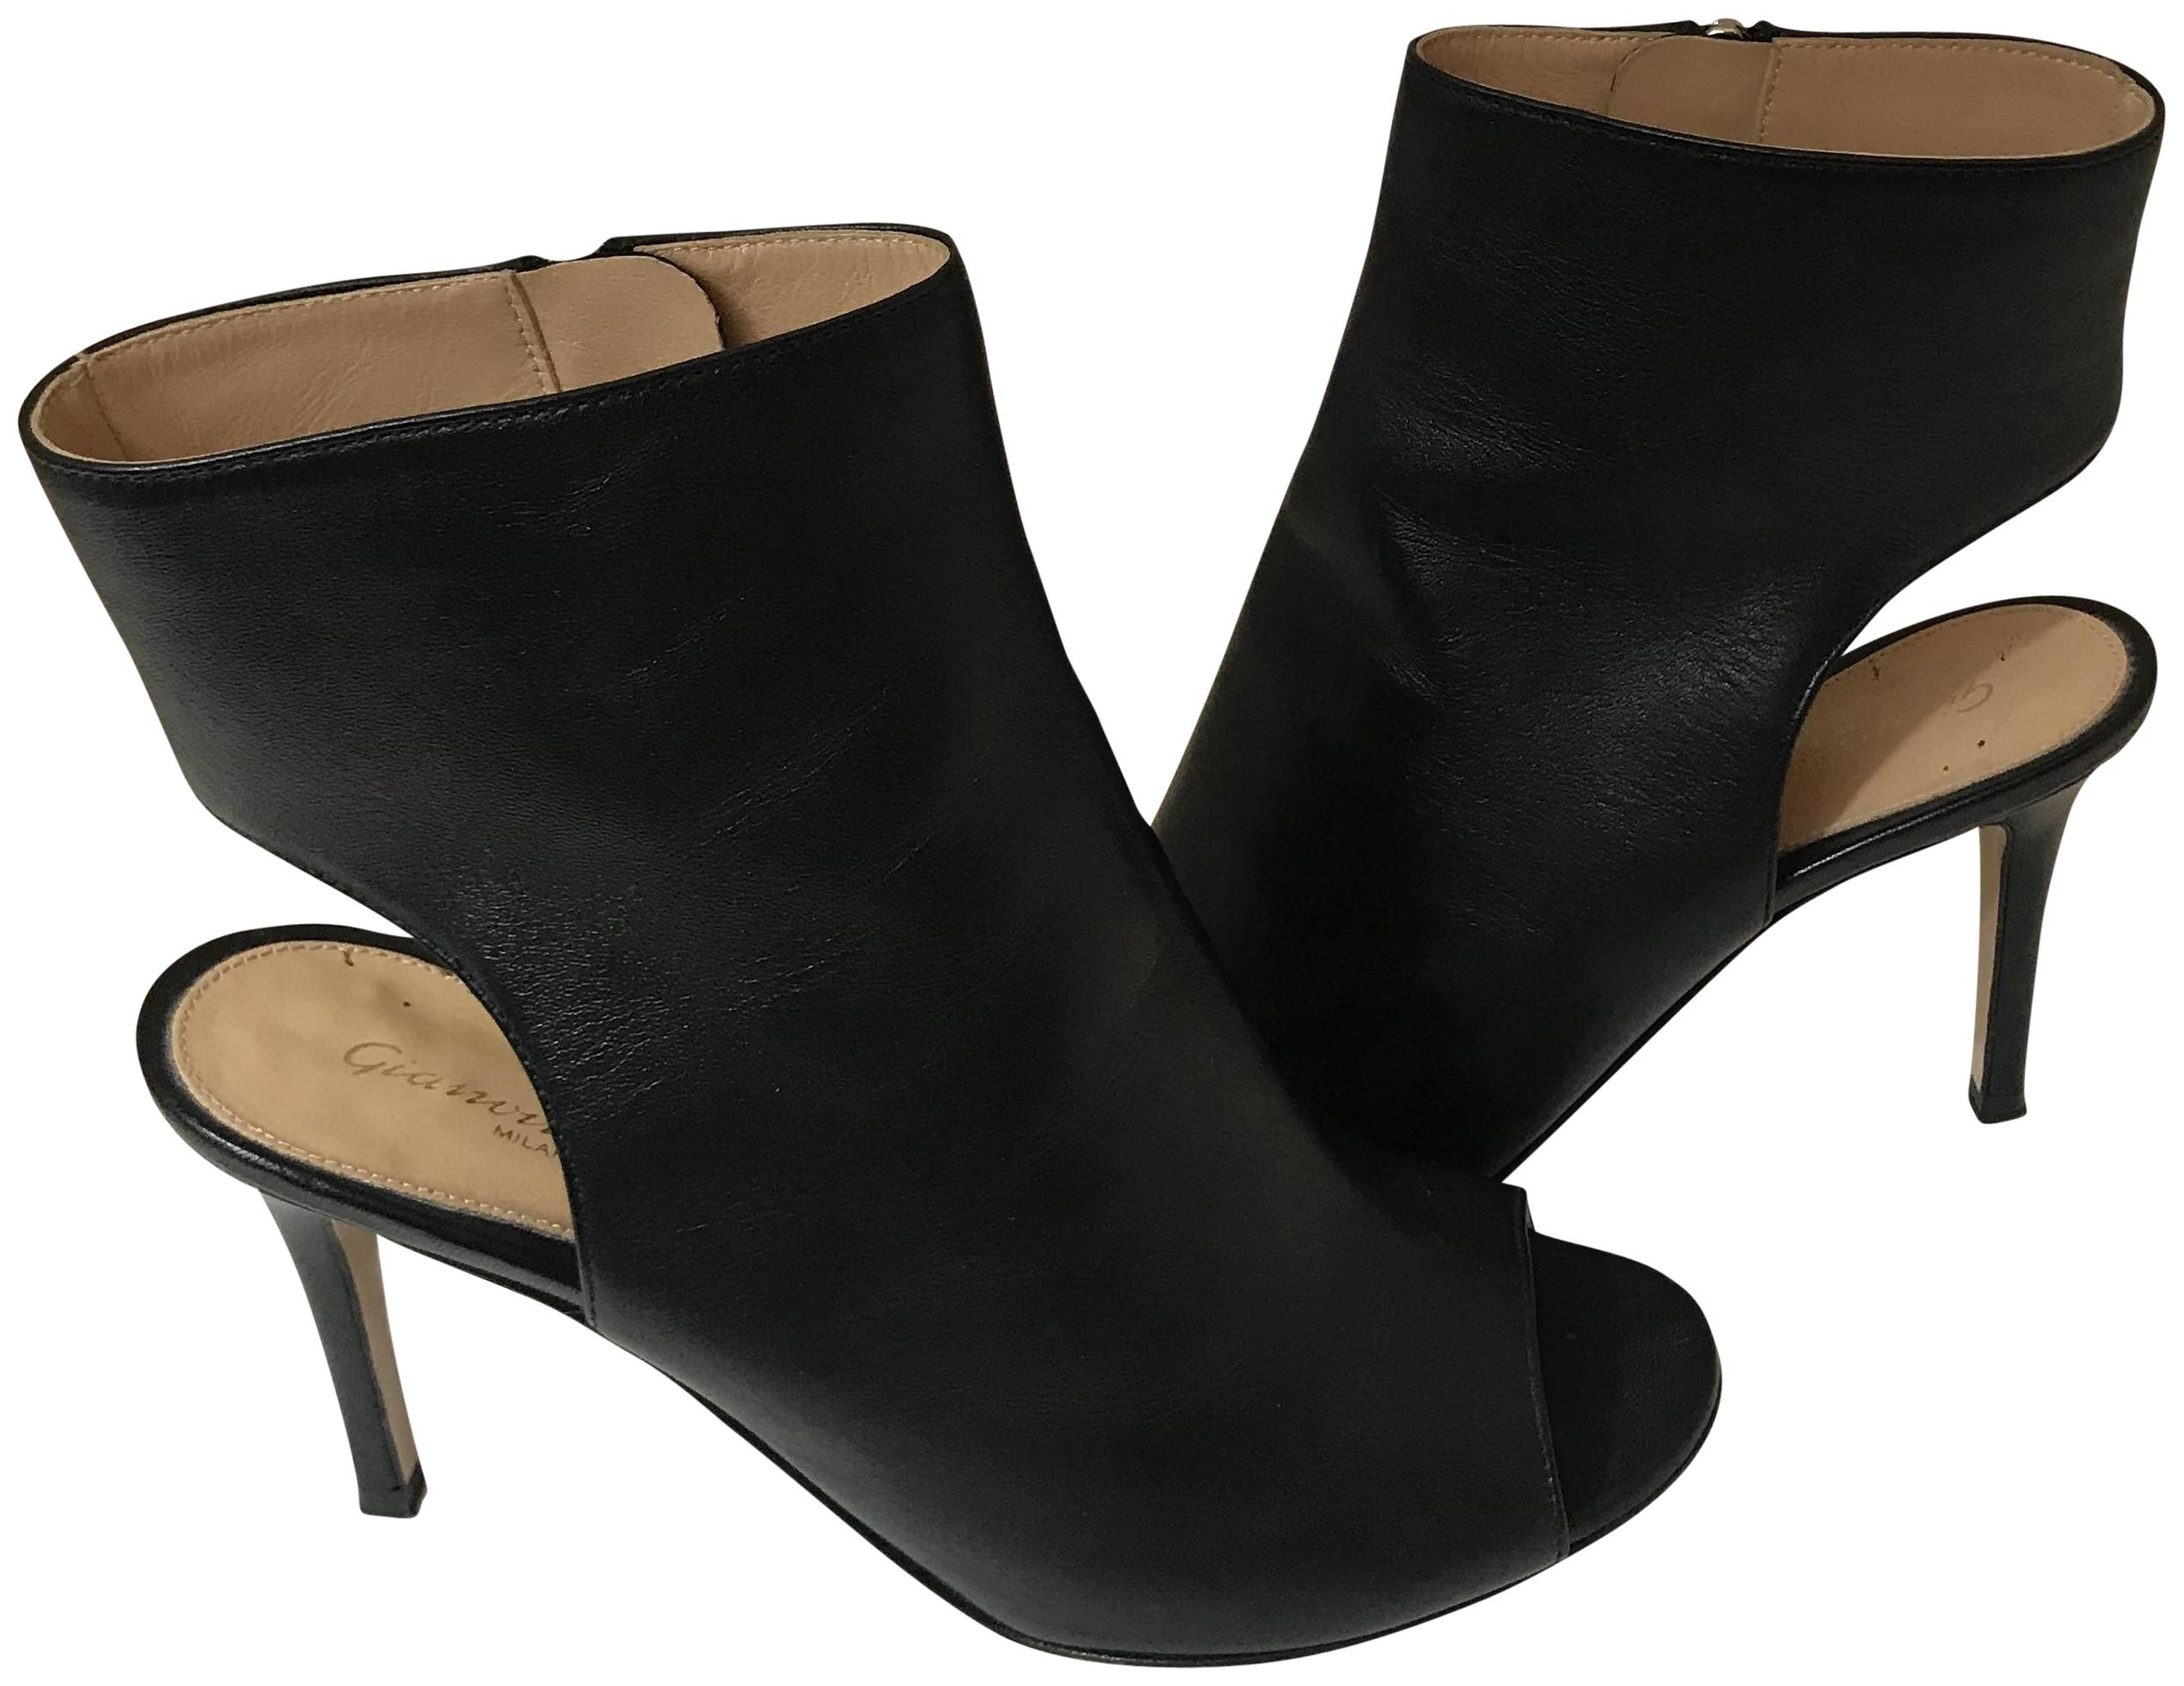 Gianvito Rossi Black 10918 Leather Peeptoe Cut Out Booties Pumps Size EU 37 (Approx. US 7) Regular (M, B)